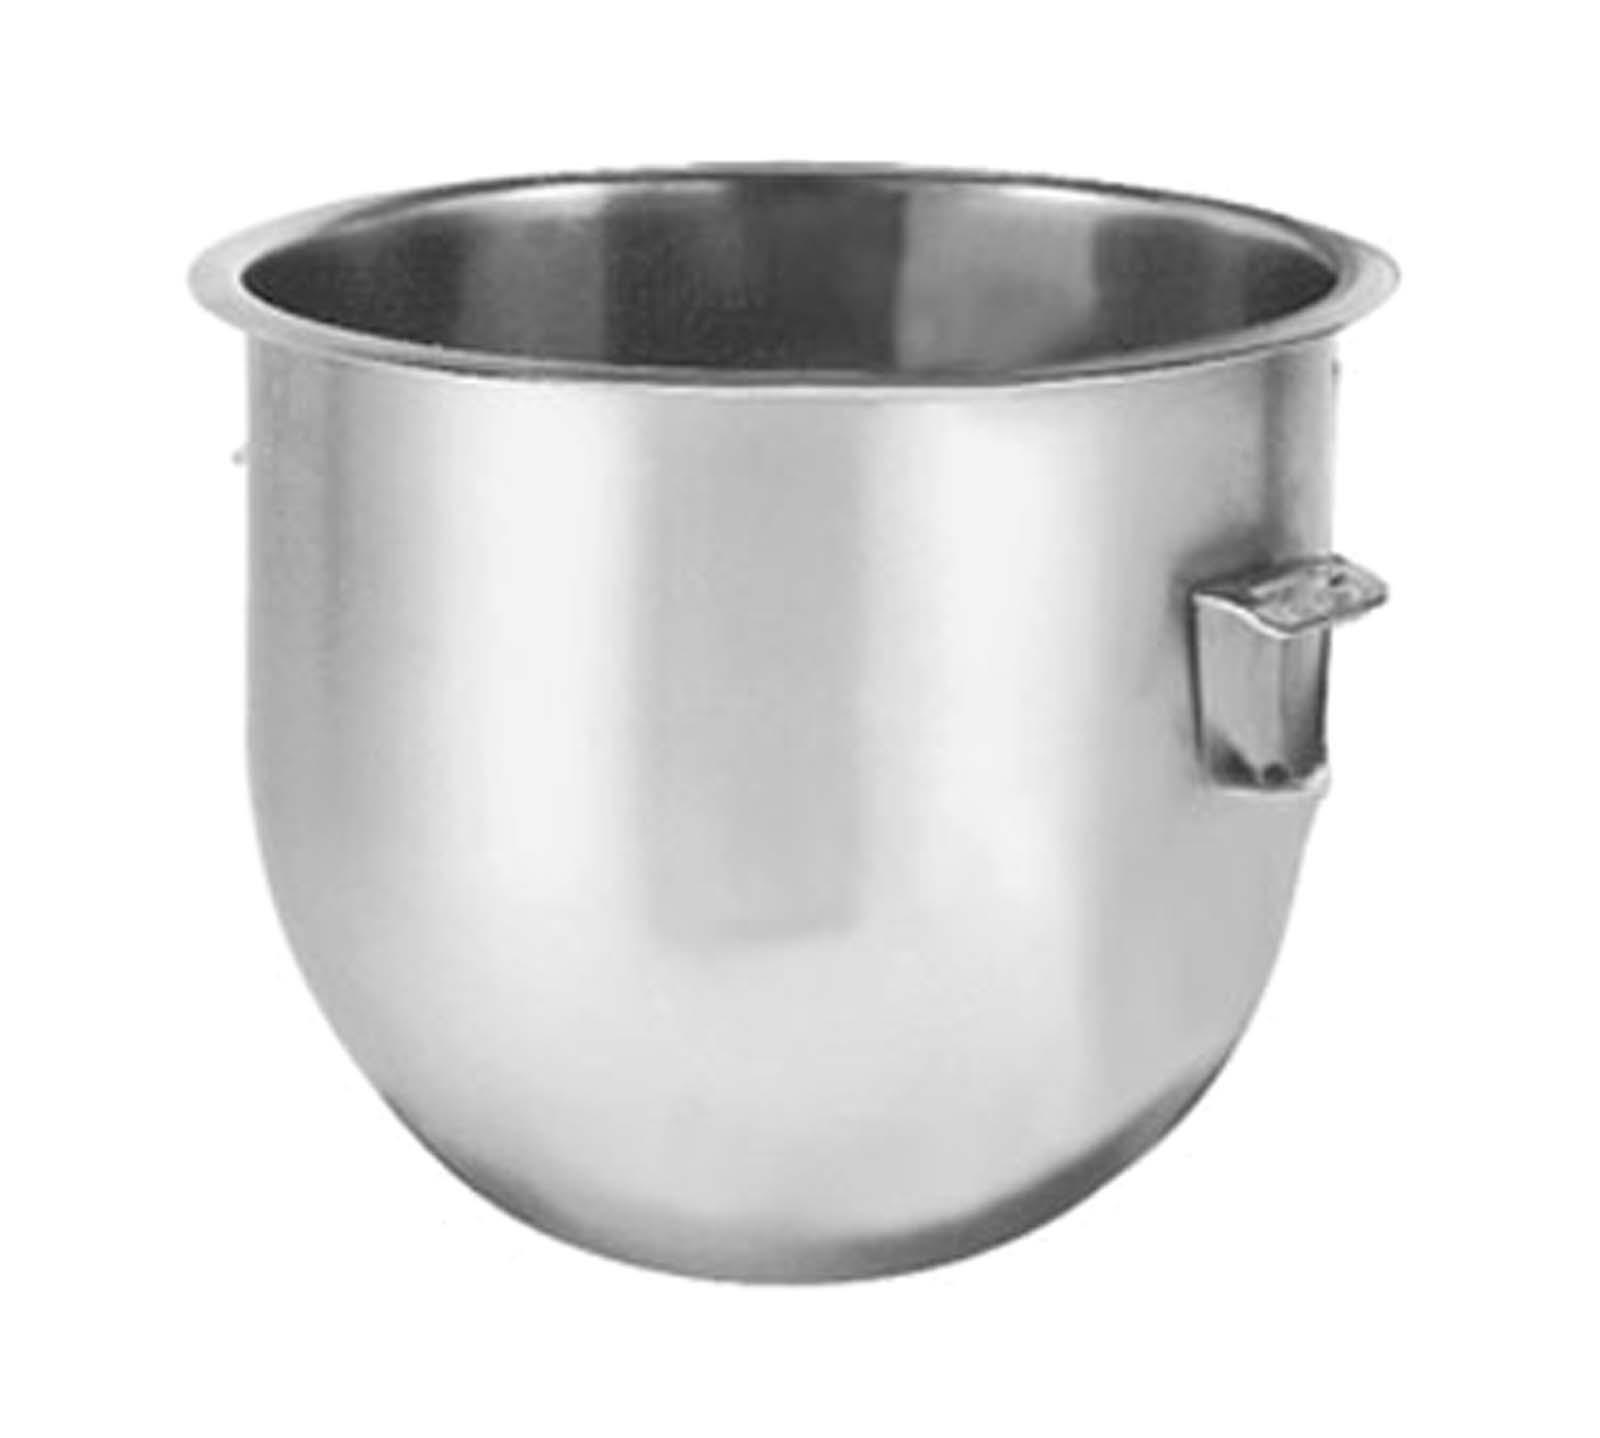 Hobart BOWL-SST005 5 qt. Stainless Steel Mixing Bowl N50 Replacement by